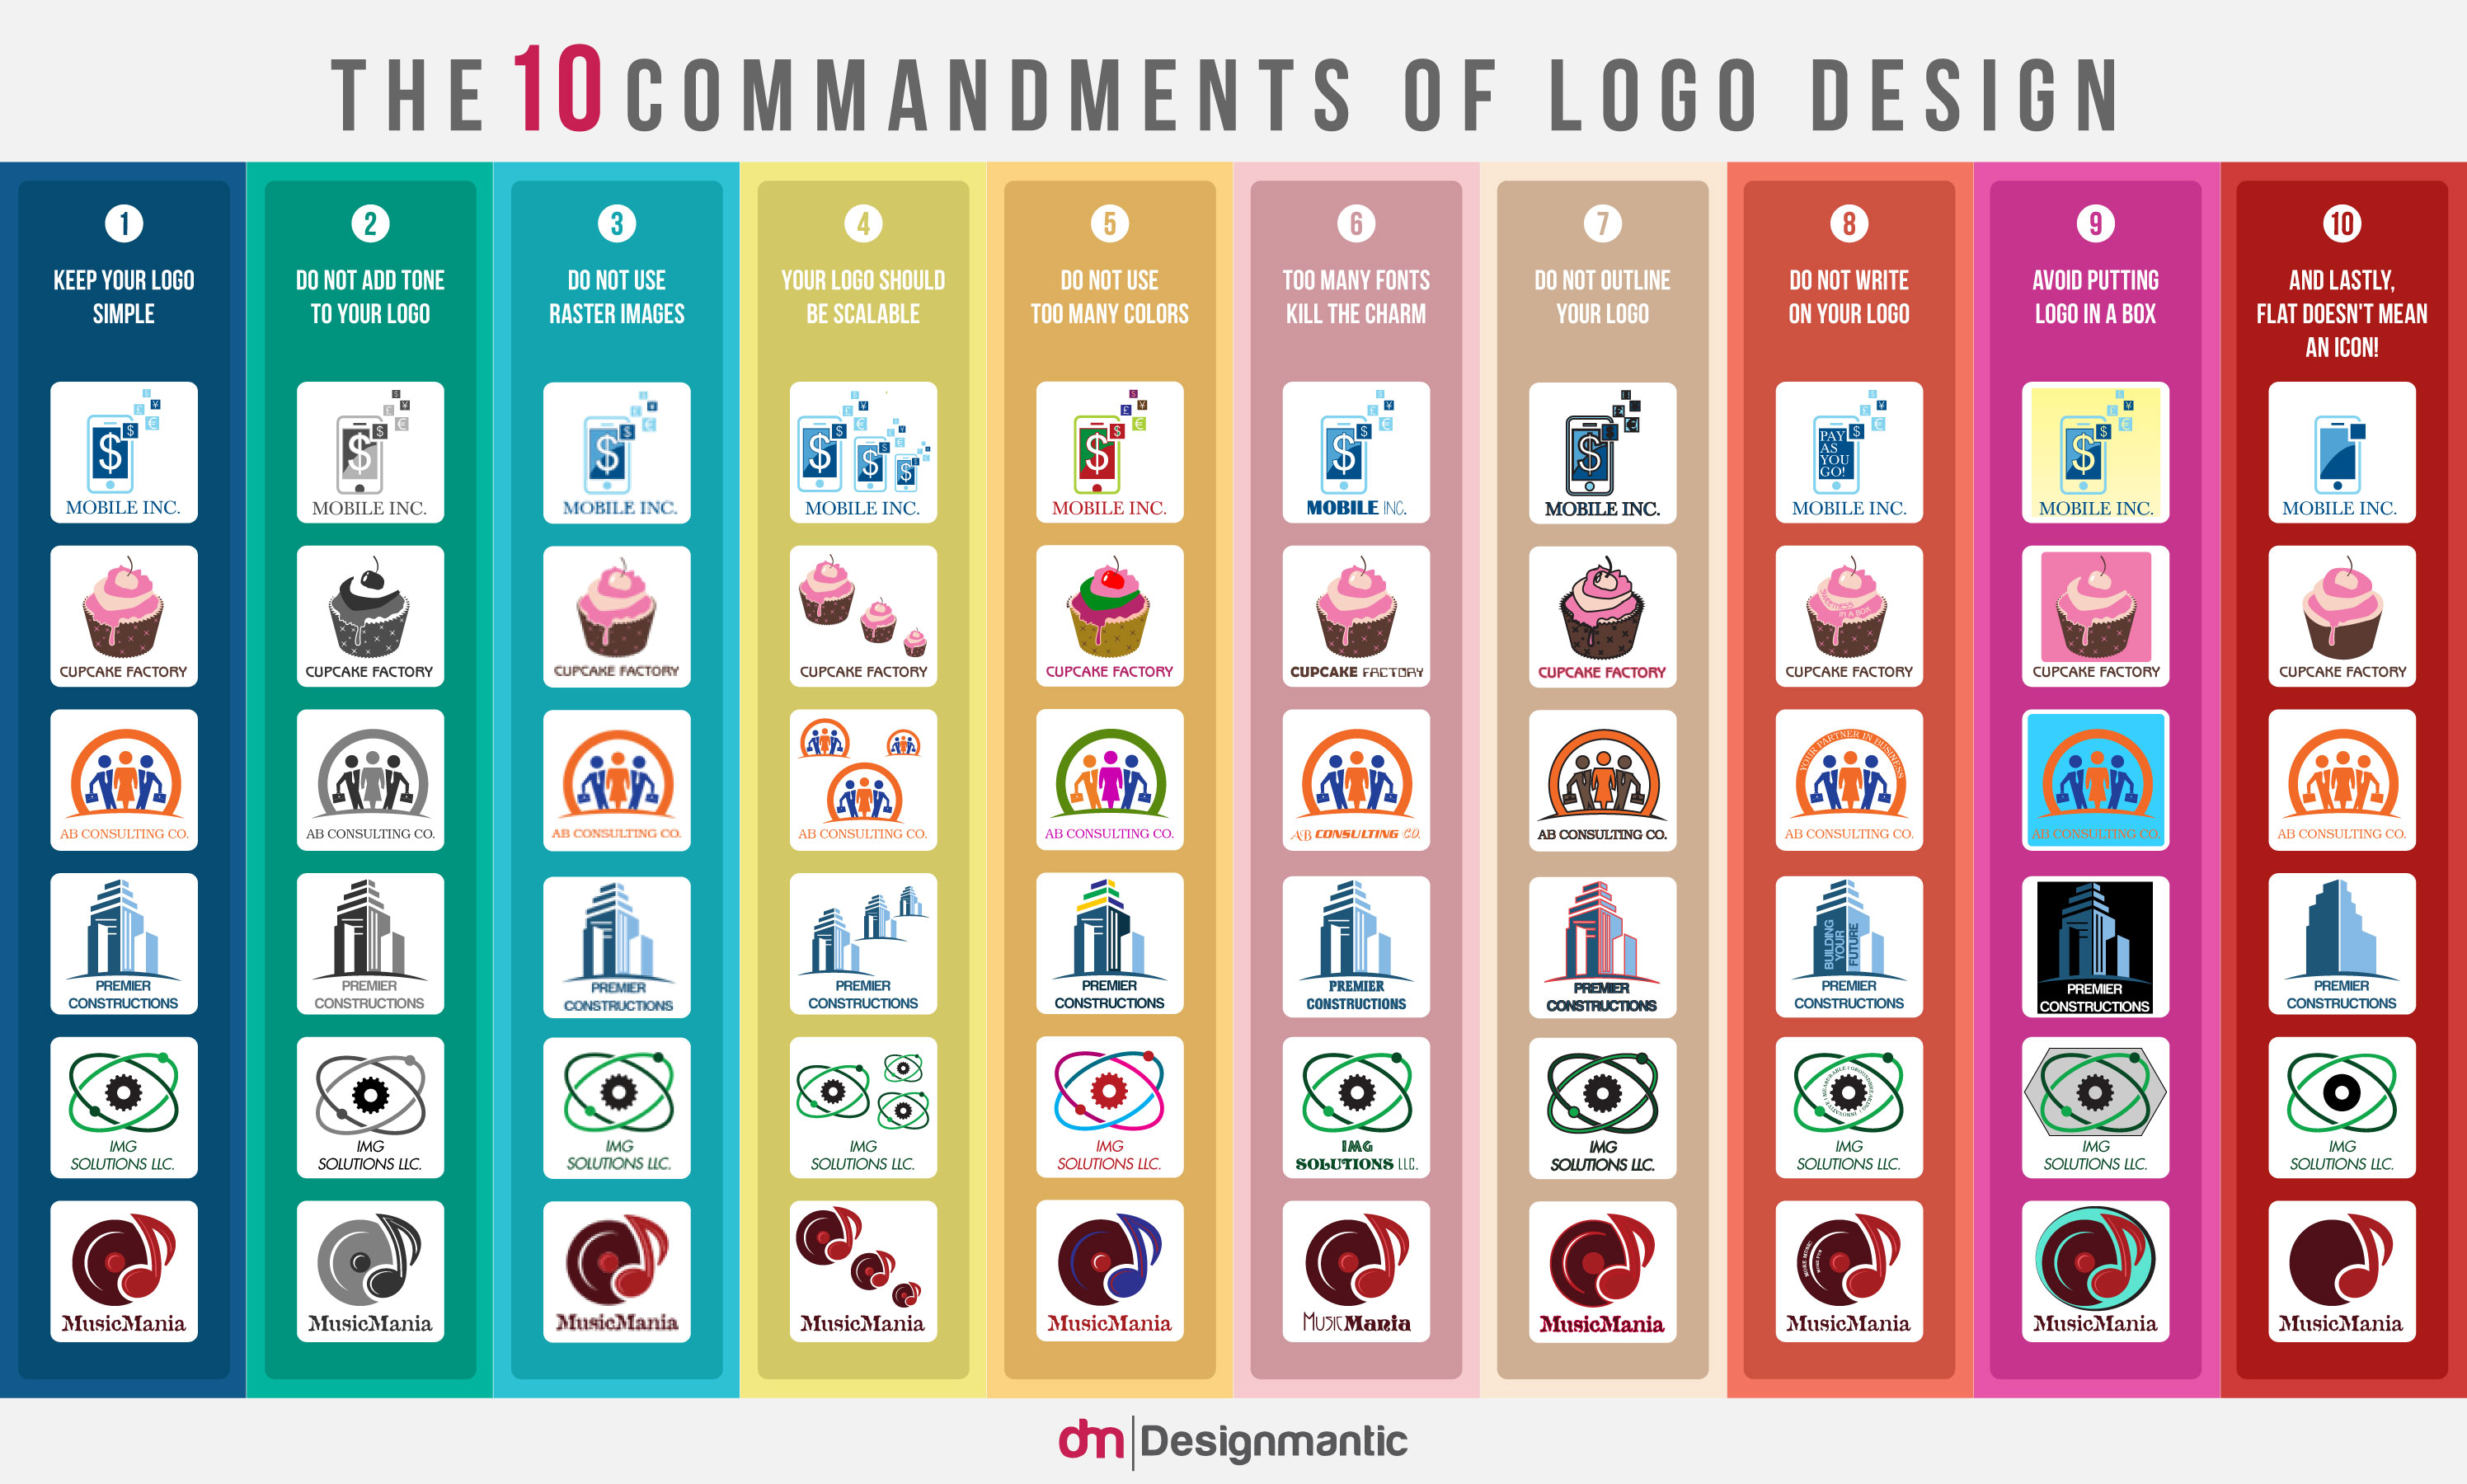 [INFOGRAPHIC]: 10 Commandments of Logo Design